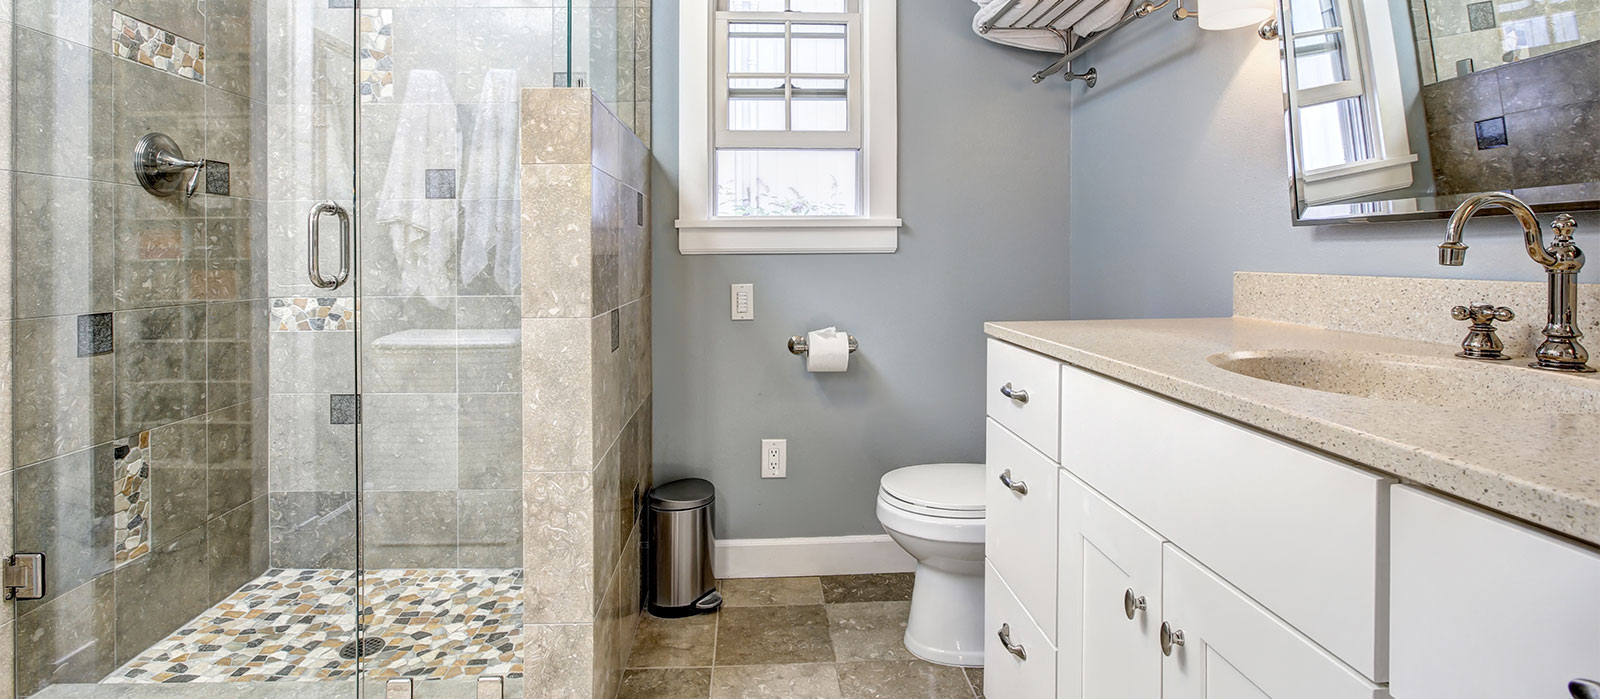 Plumbing Services Licensed Plumber In St Charles MO Arch Plumbing - St charles bathroom remodeling